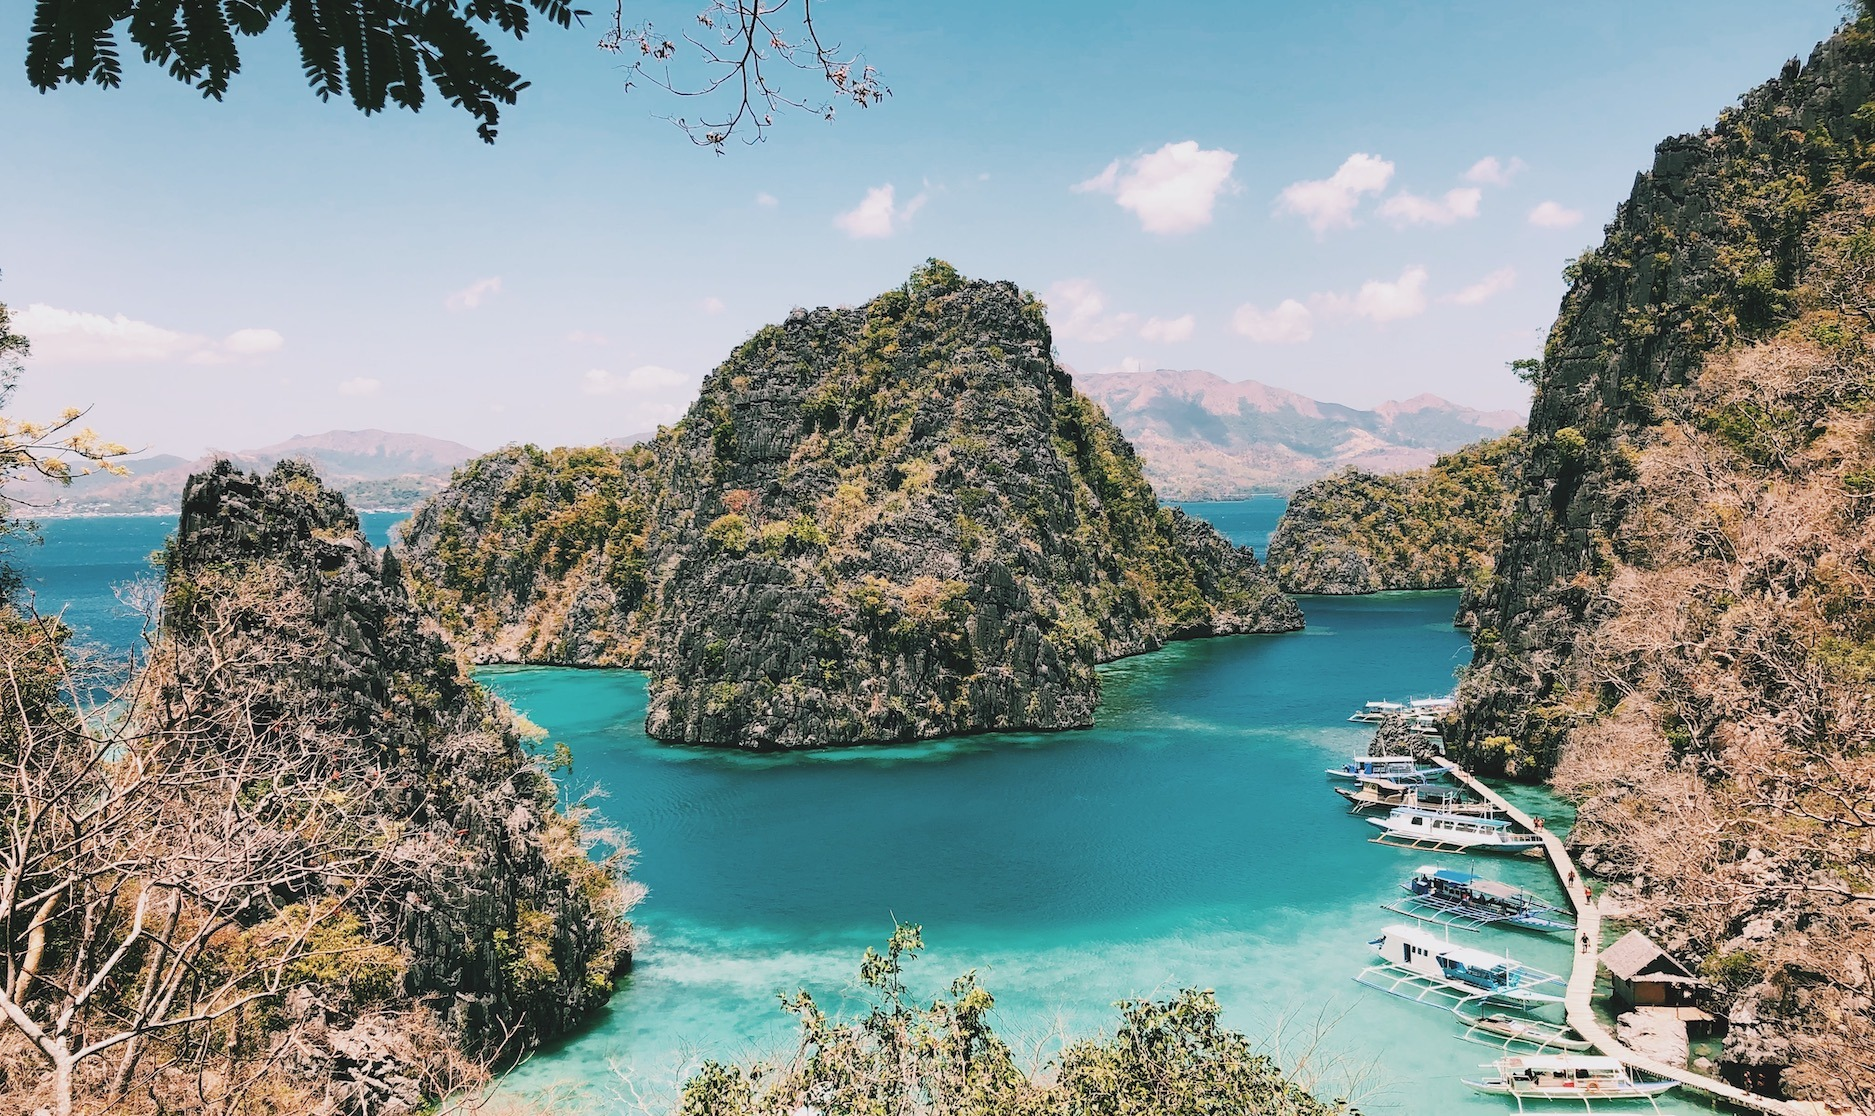 Viewpoint Kayangan Lake Coron Palawan Solon Travel